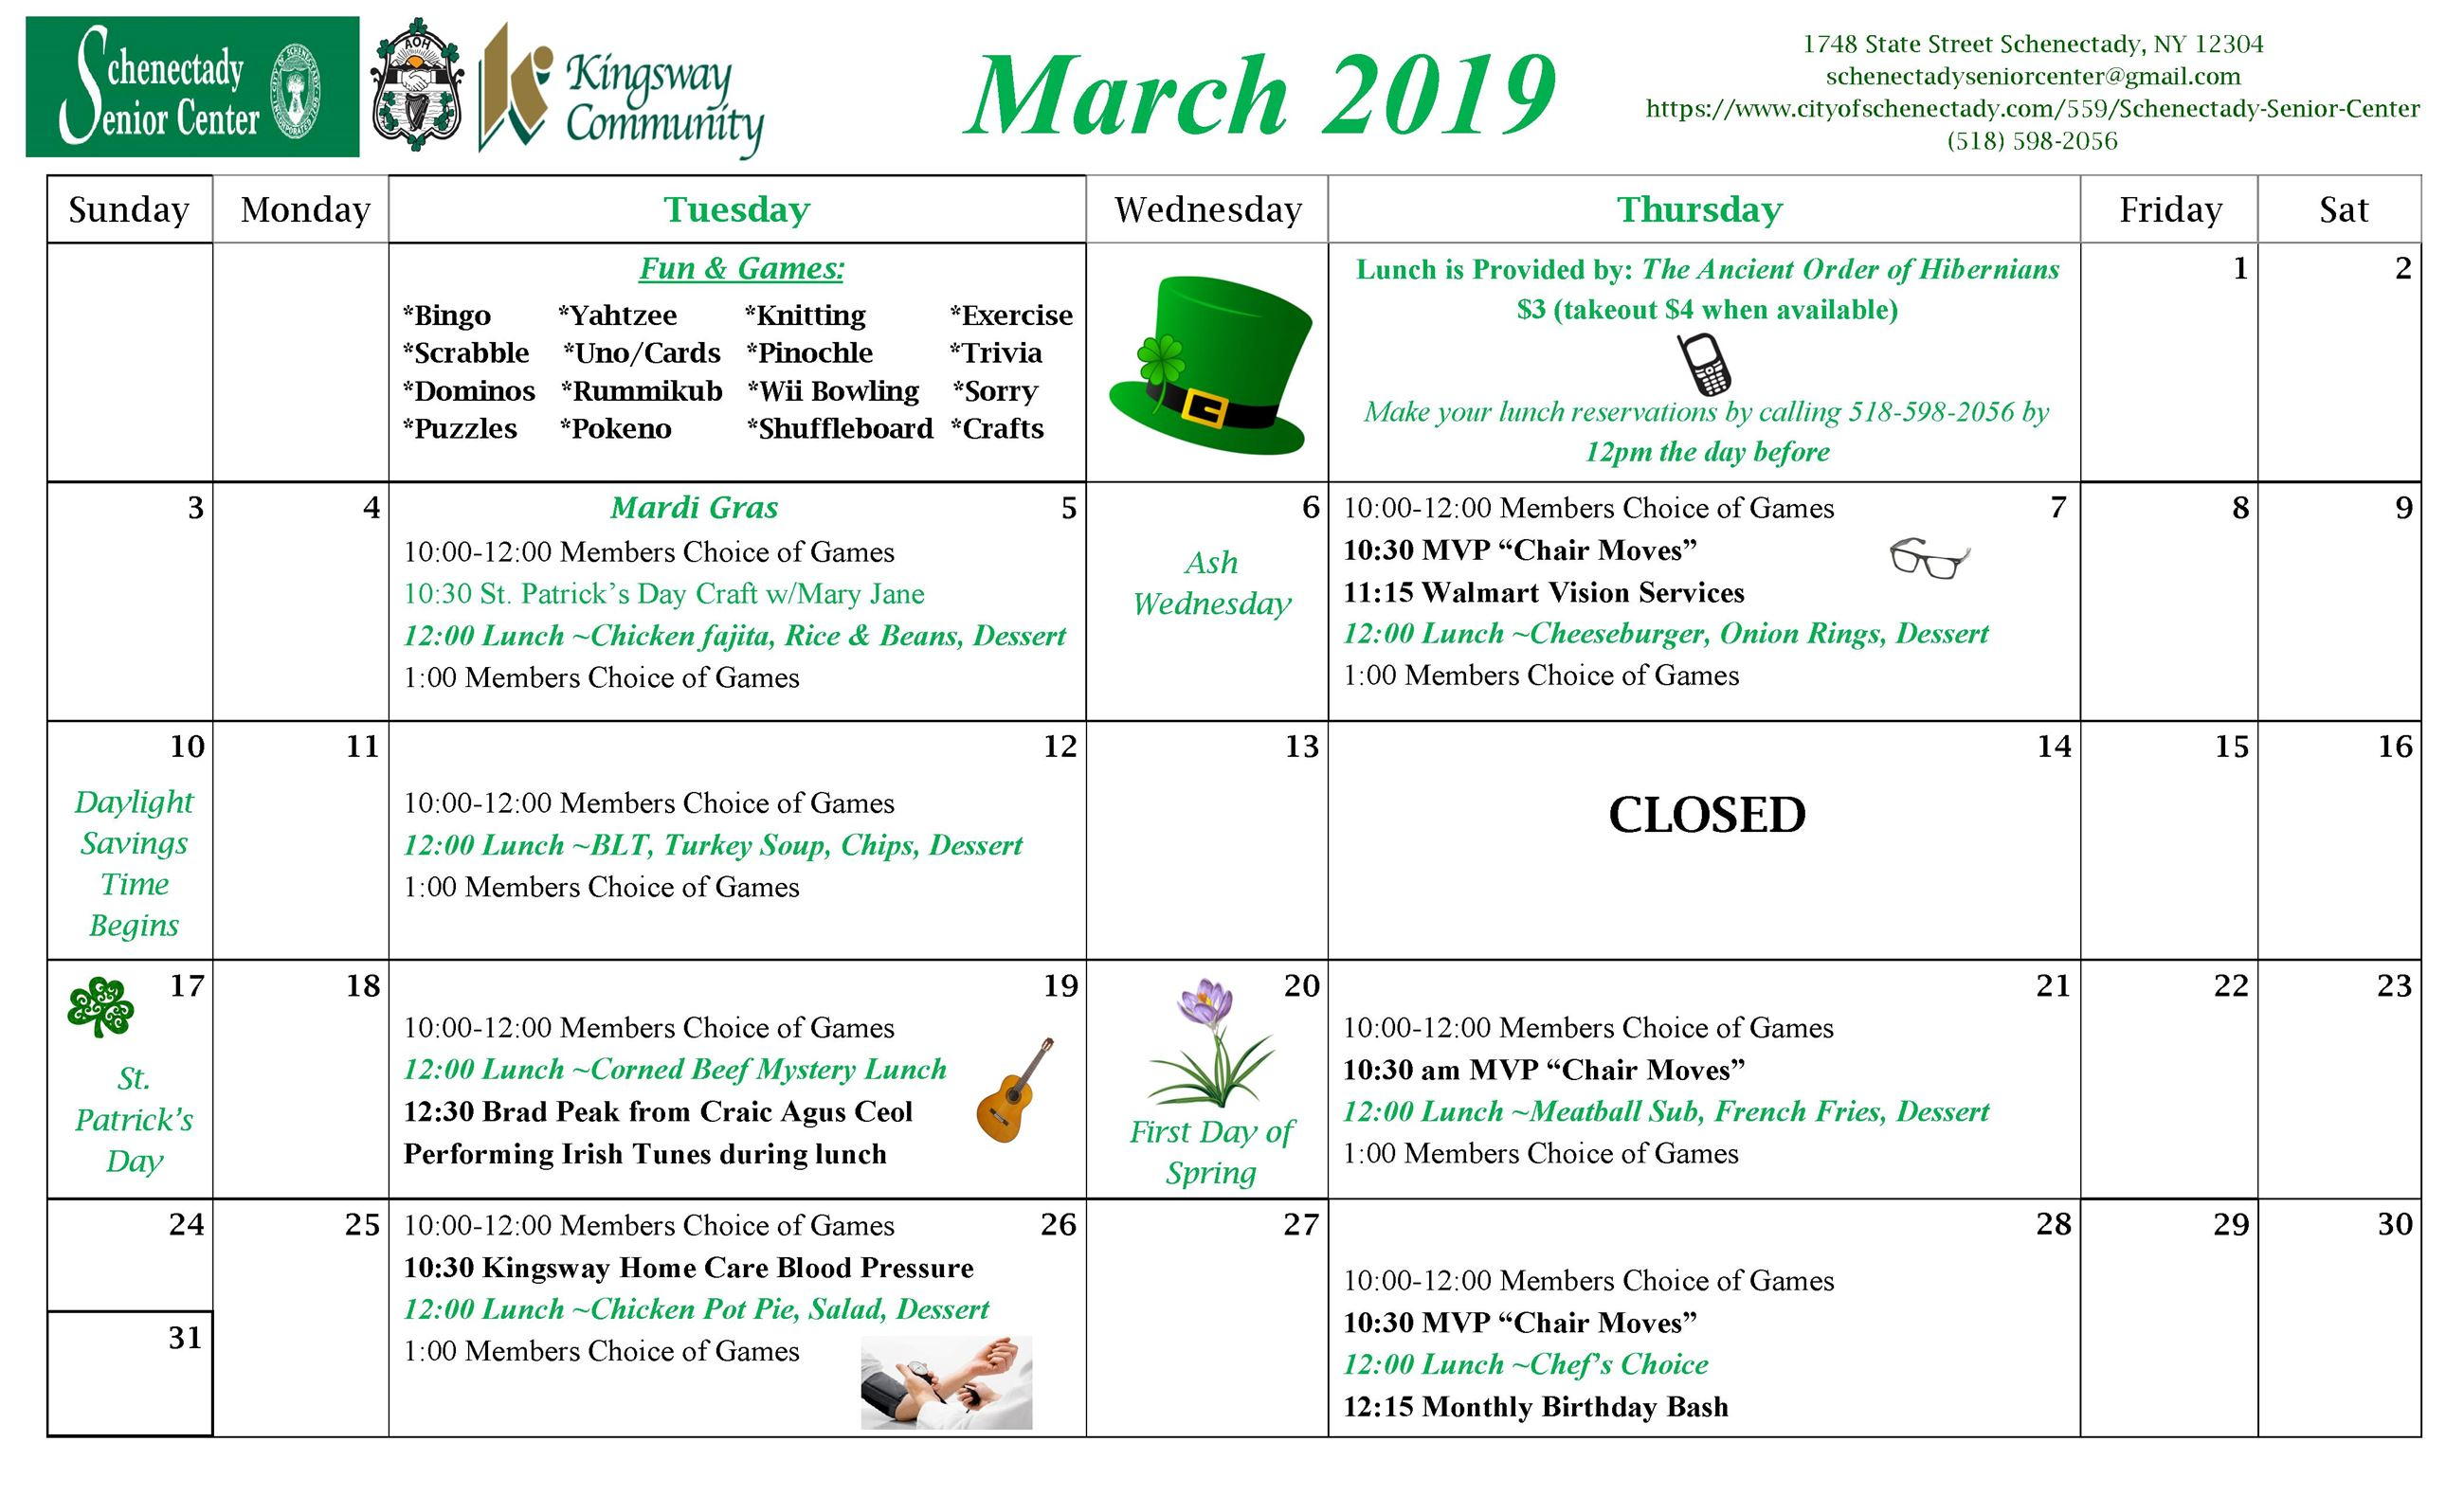 Schenectady Senior Center March 2019 Newsletter